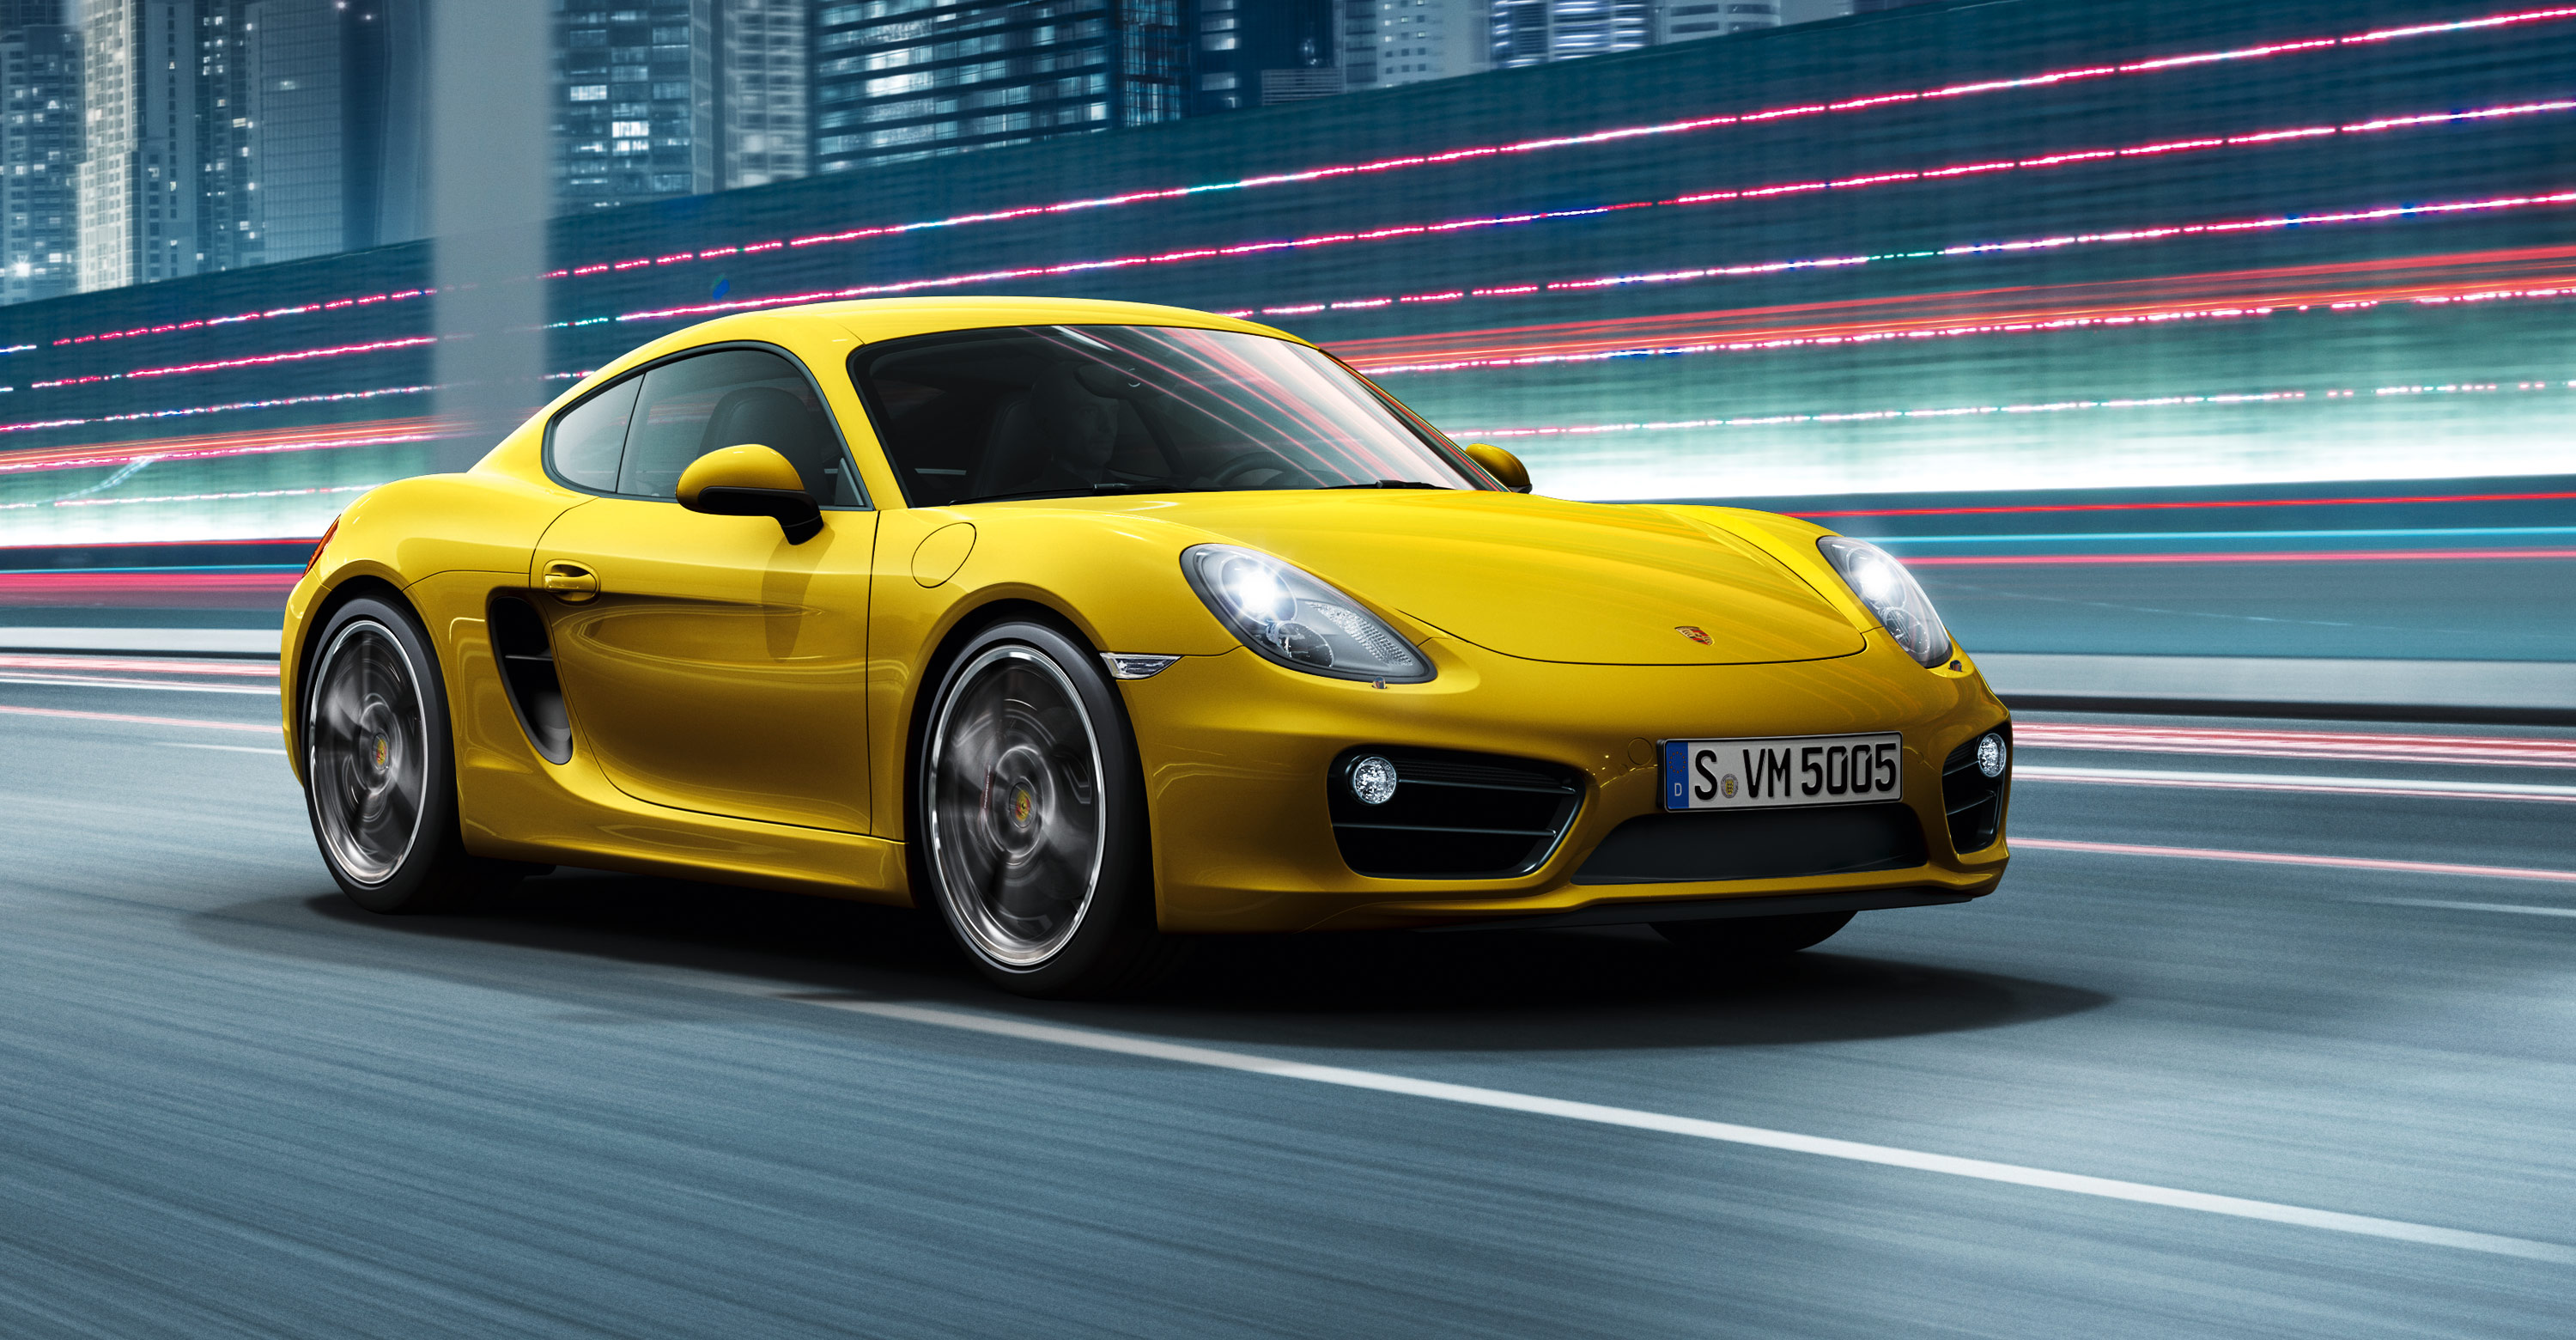 Porsche Cayman I (987) Restyling 2009 - 2013 Coupe #2